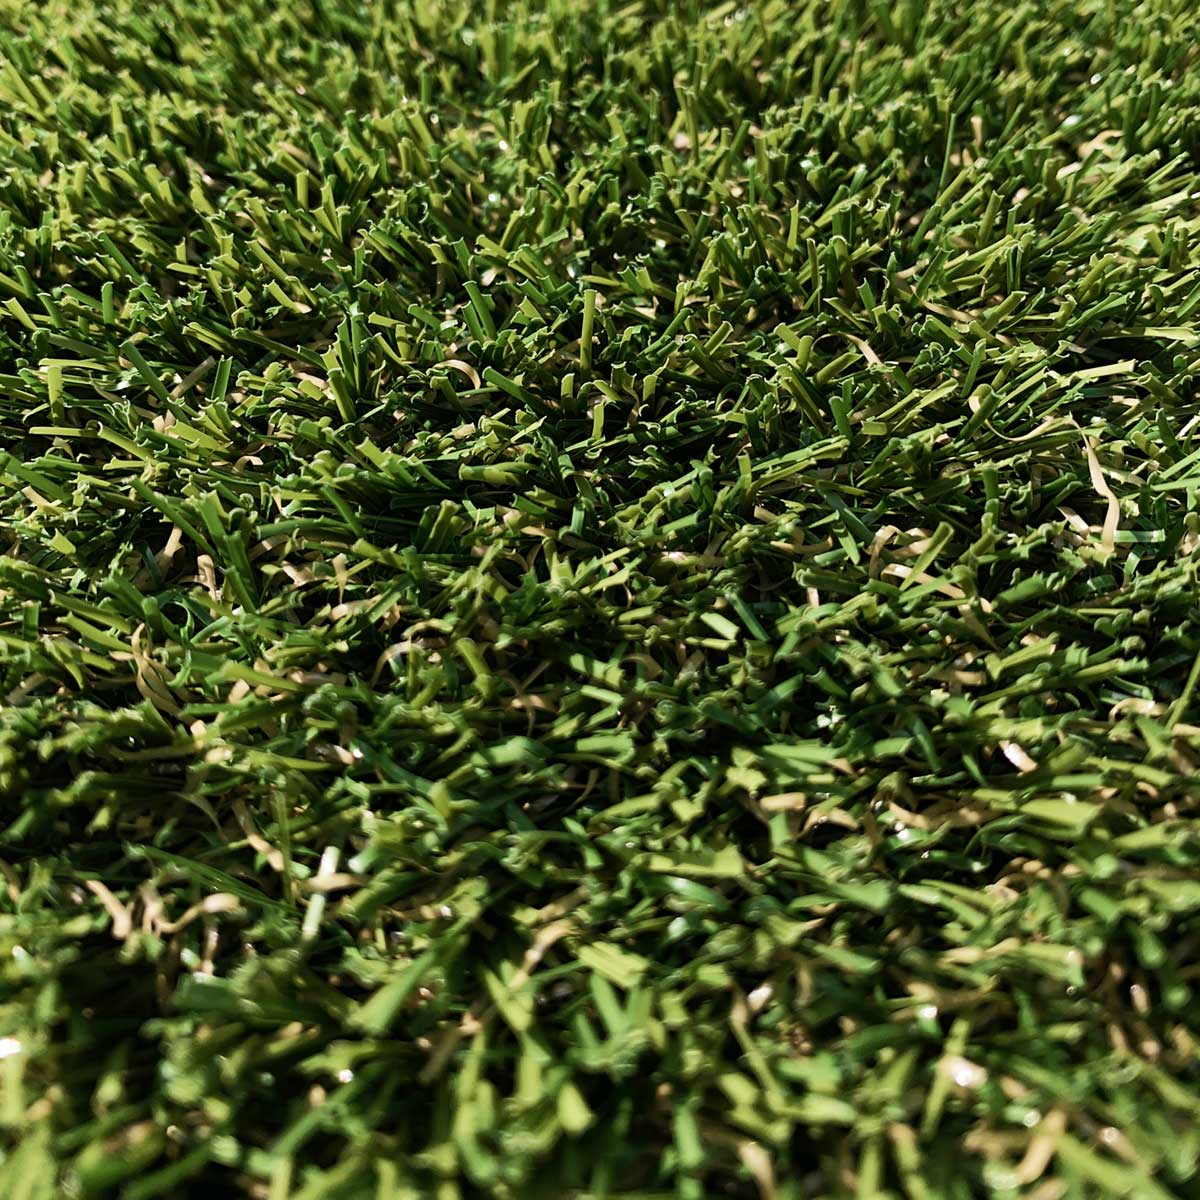 Thistle Artificial Grass: Braemar 2019 (30mm)